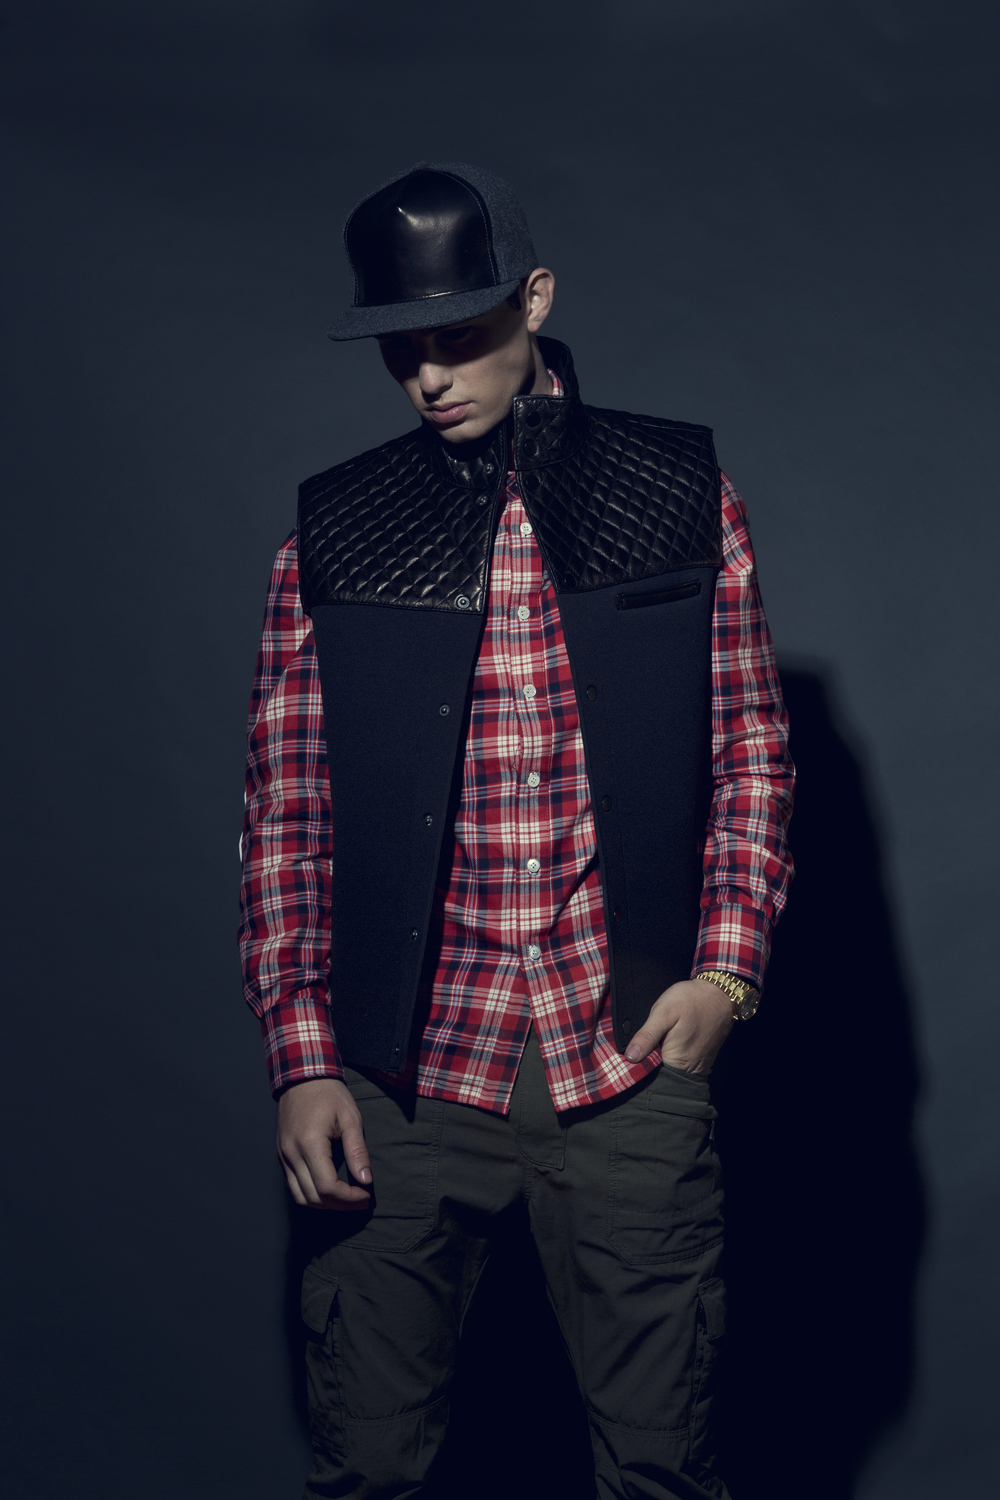 Forum on this topic: HSTRY Clothing: Nas x Grungy Gentleman, hstry-clothing-nas-x-grungy-gentleman/